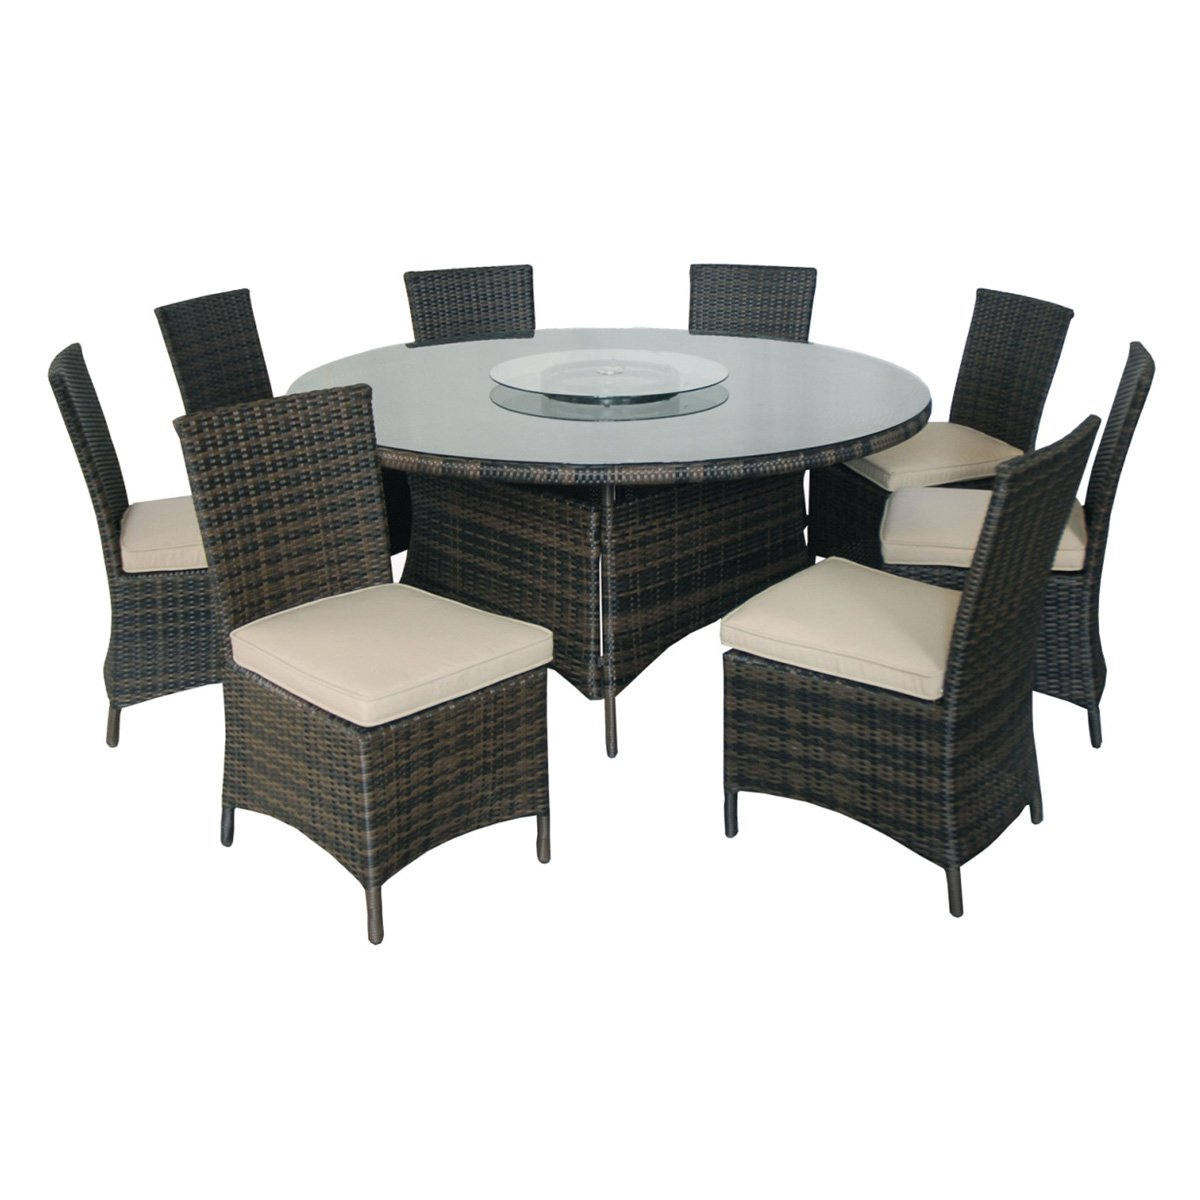 Creative Living Monte Carlo 9 Piece Round Patio Dining Set